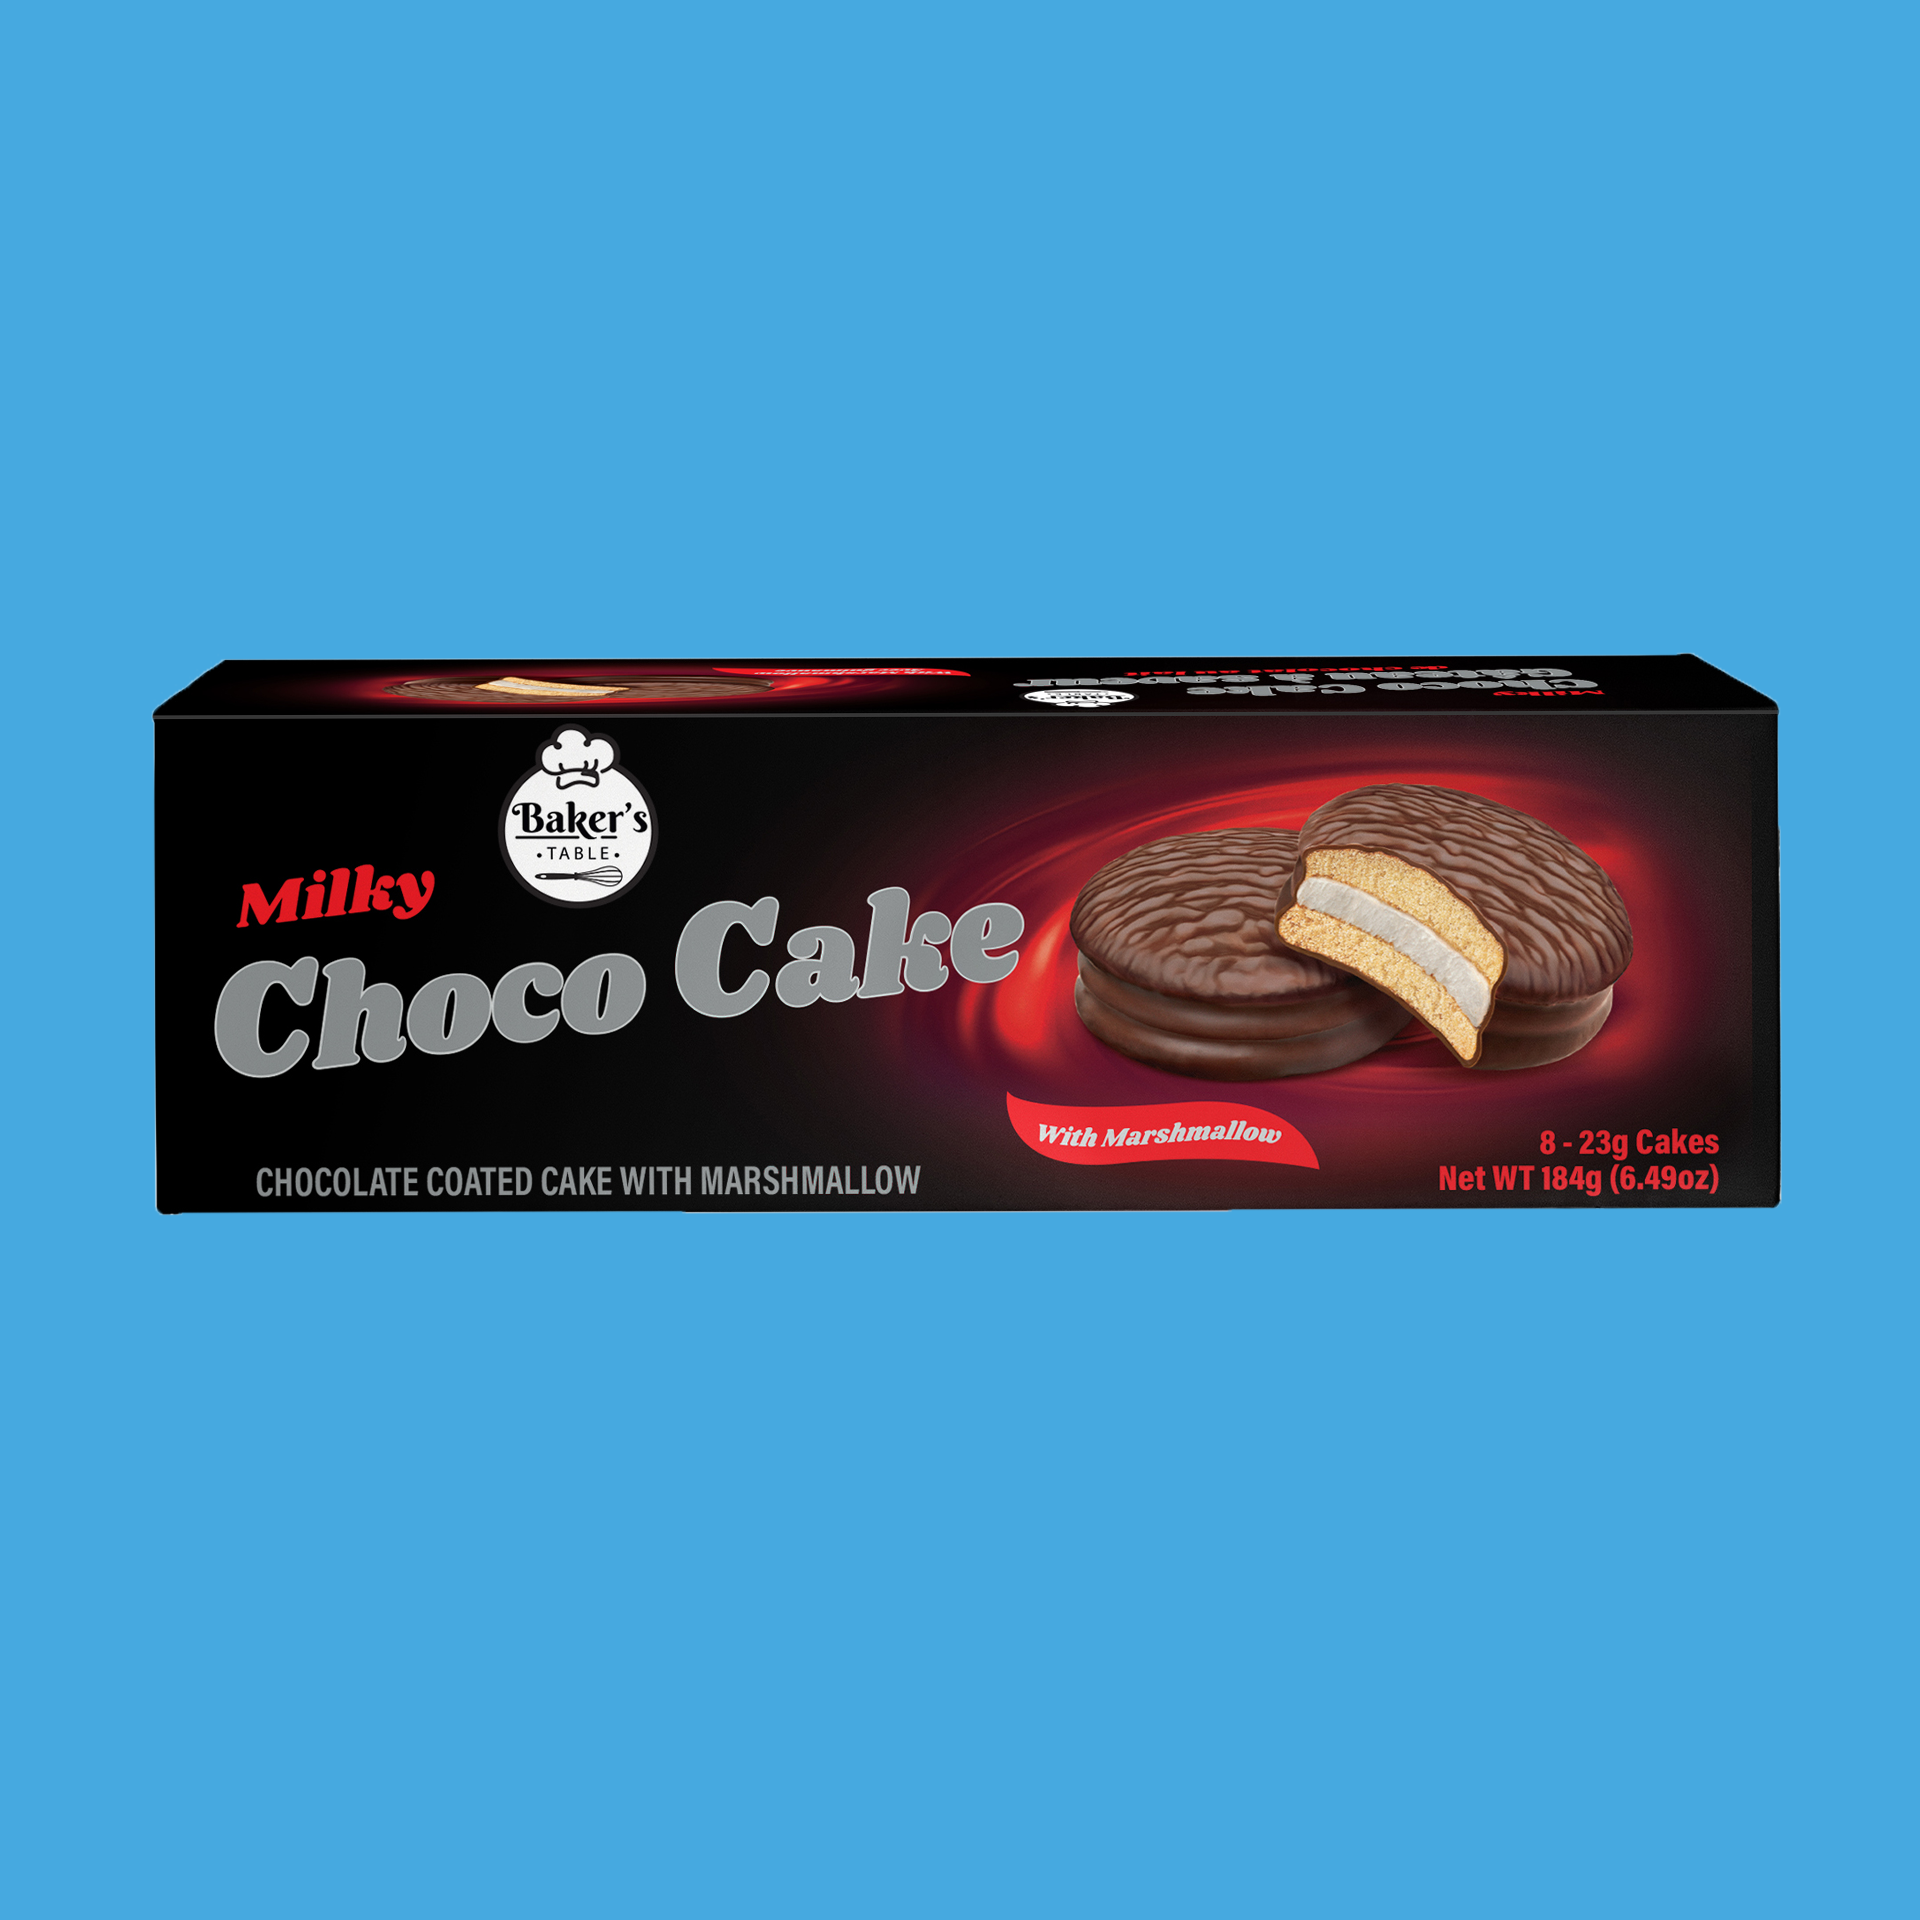 https://exclusivebrands.ca/wp-content/uploads/2021/04/silo-Bakers_Table_Choco_Cake.png